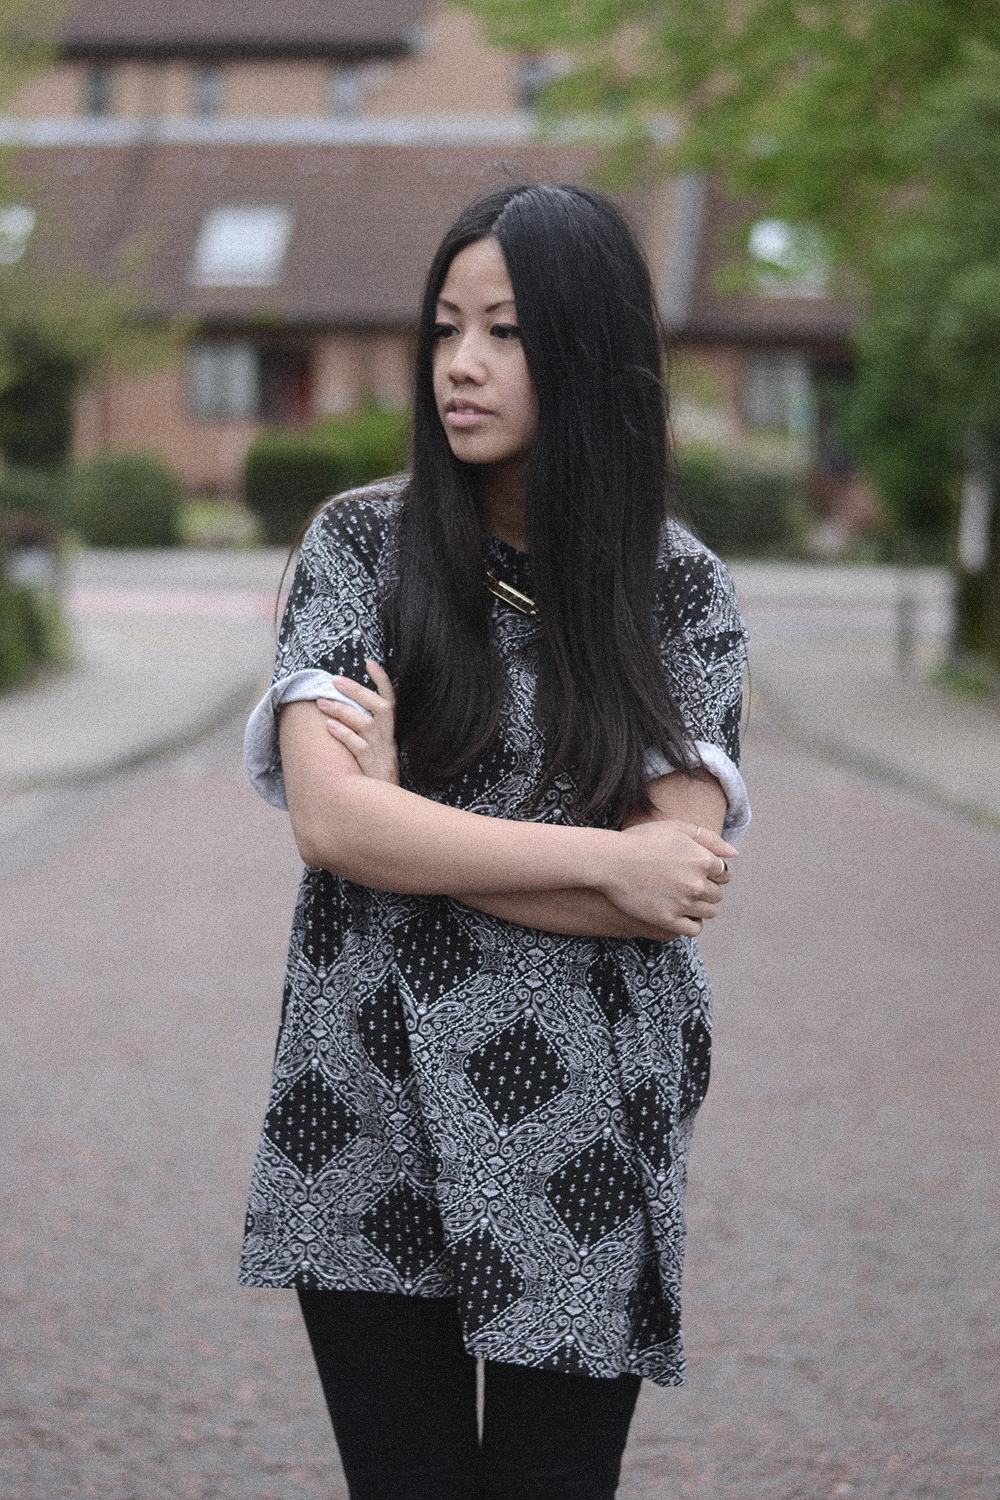 IHEARTALICE – Fashion & Travel-Blog by Alice M. Huynh from Germany: OOTD – Outfit of the Day wearing Vintage Print Shirt , Skinny Jeans & Chelsea Boots